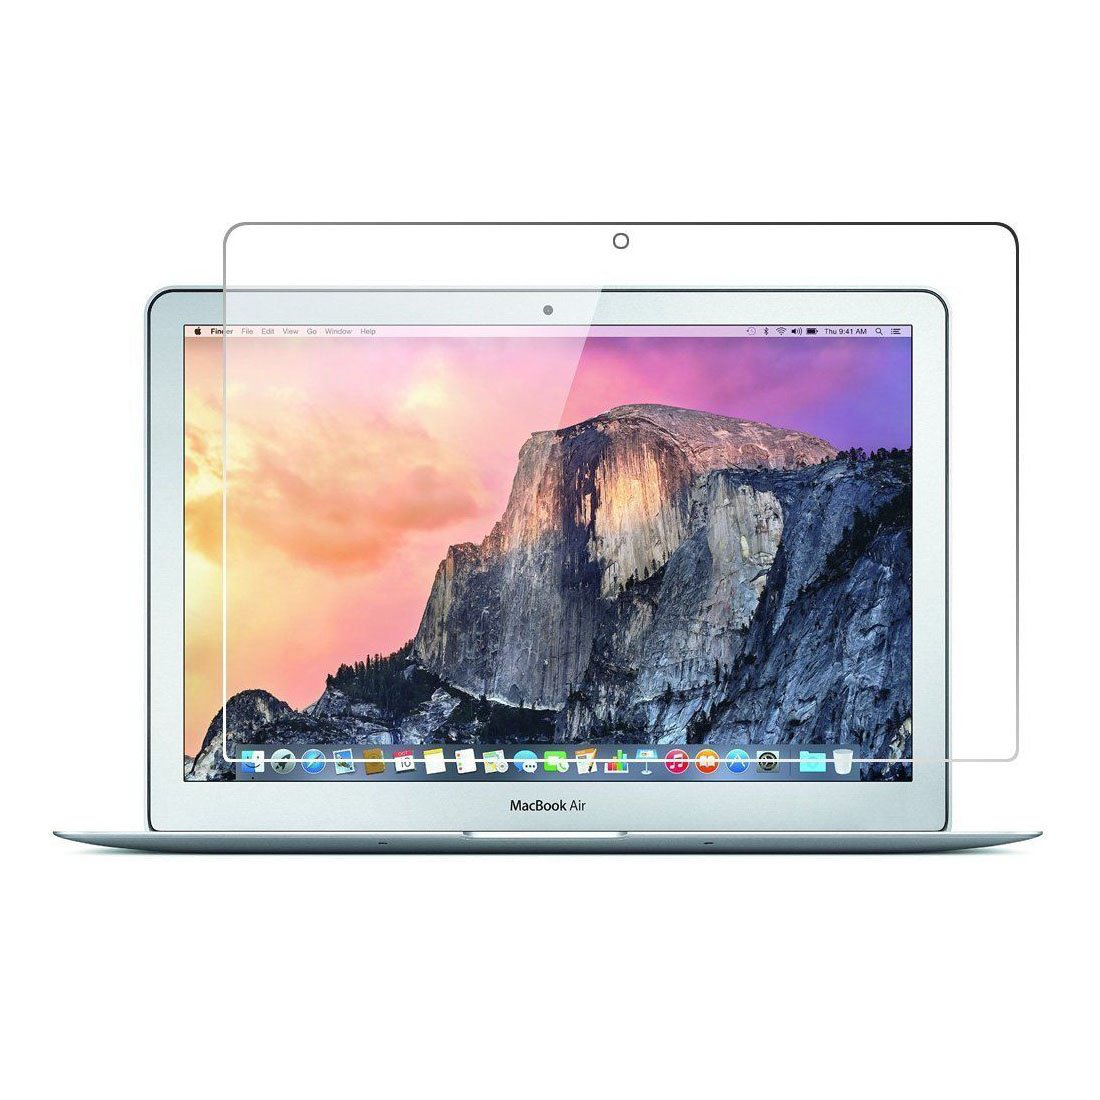 Macbook Air 11 inch Laptop Screen Protector,Full Coverage Tempered Glass Screen Protector for apple Macbook Air 11.6 inch with Anti-fingerprint Bubble-Free Crystal Clear